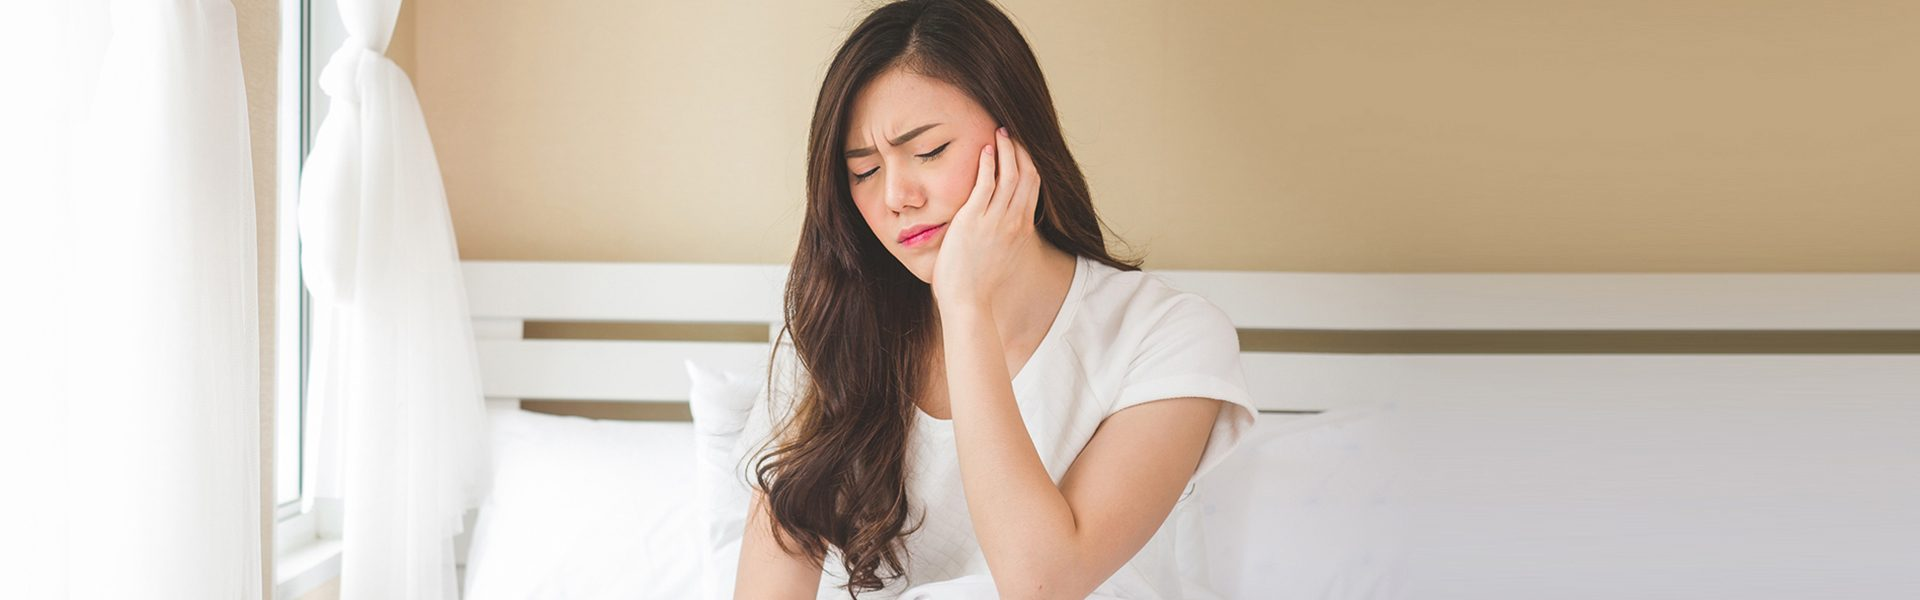 Teeth Extraction Procedures and Aftercare